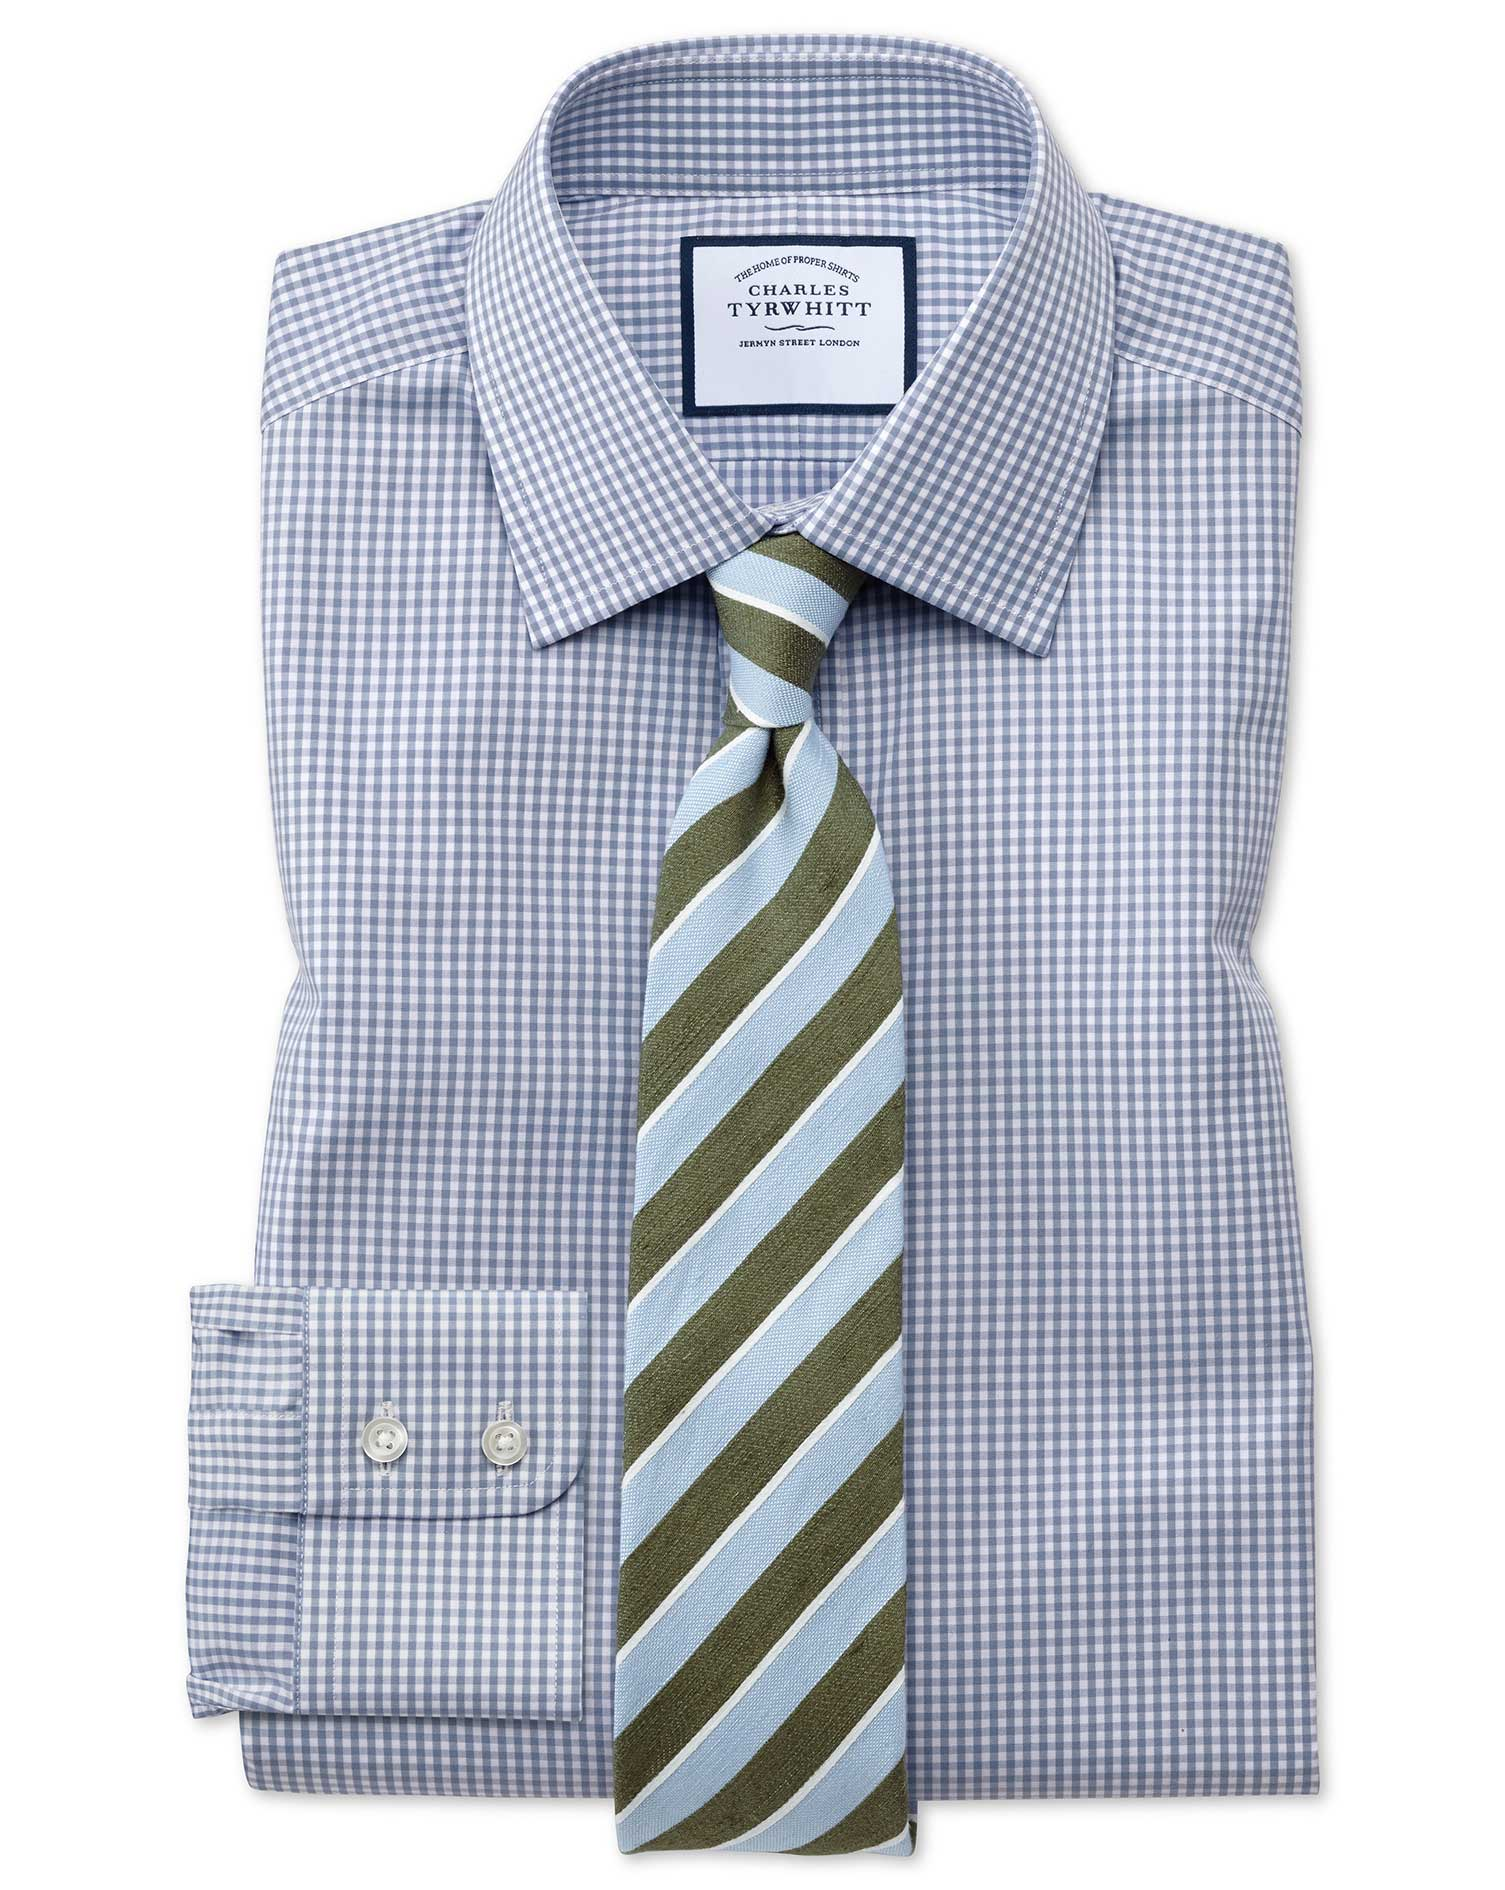 Extra Slim Fit Small Gingham Grey Cotton Formal Shirt Single Cuff Size 15.5/34 by Charles Tyrwhitt